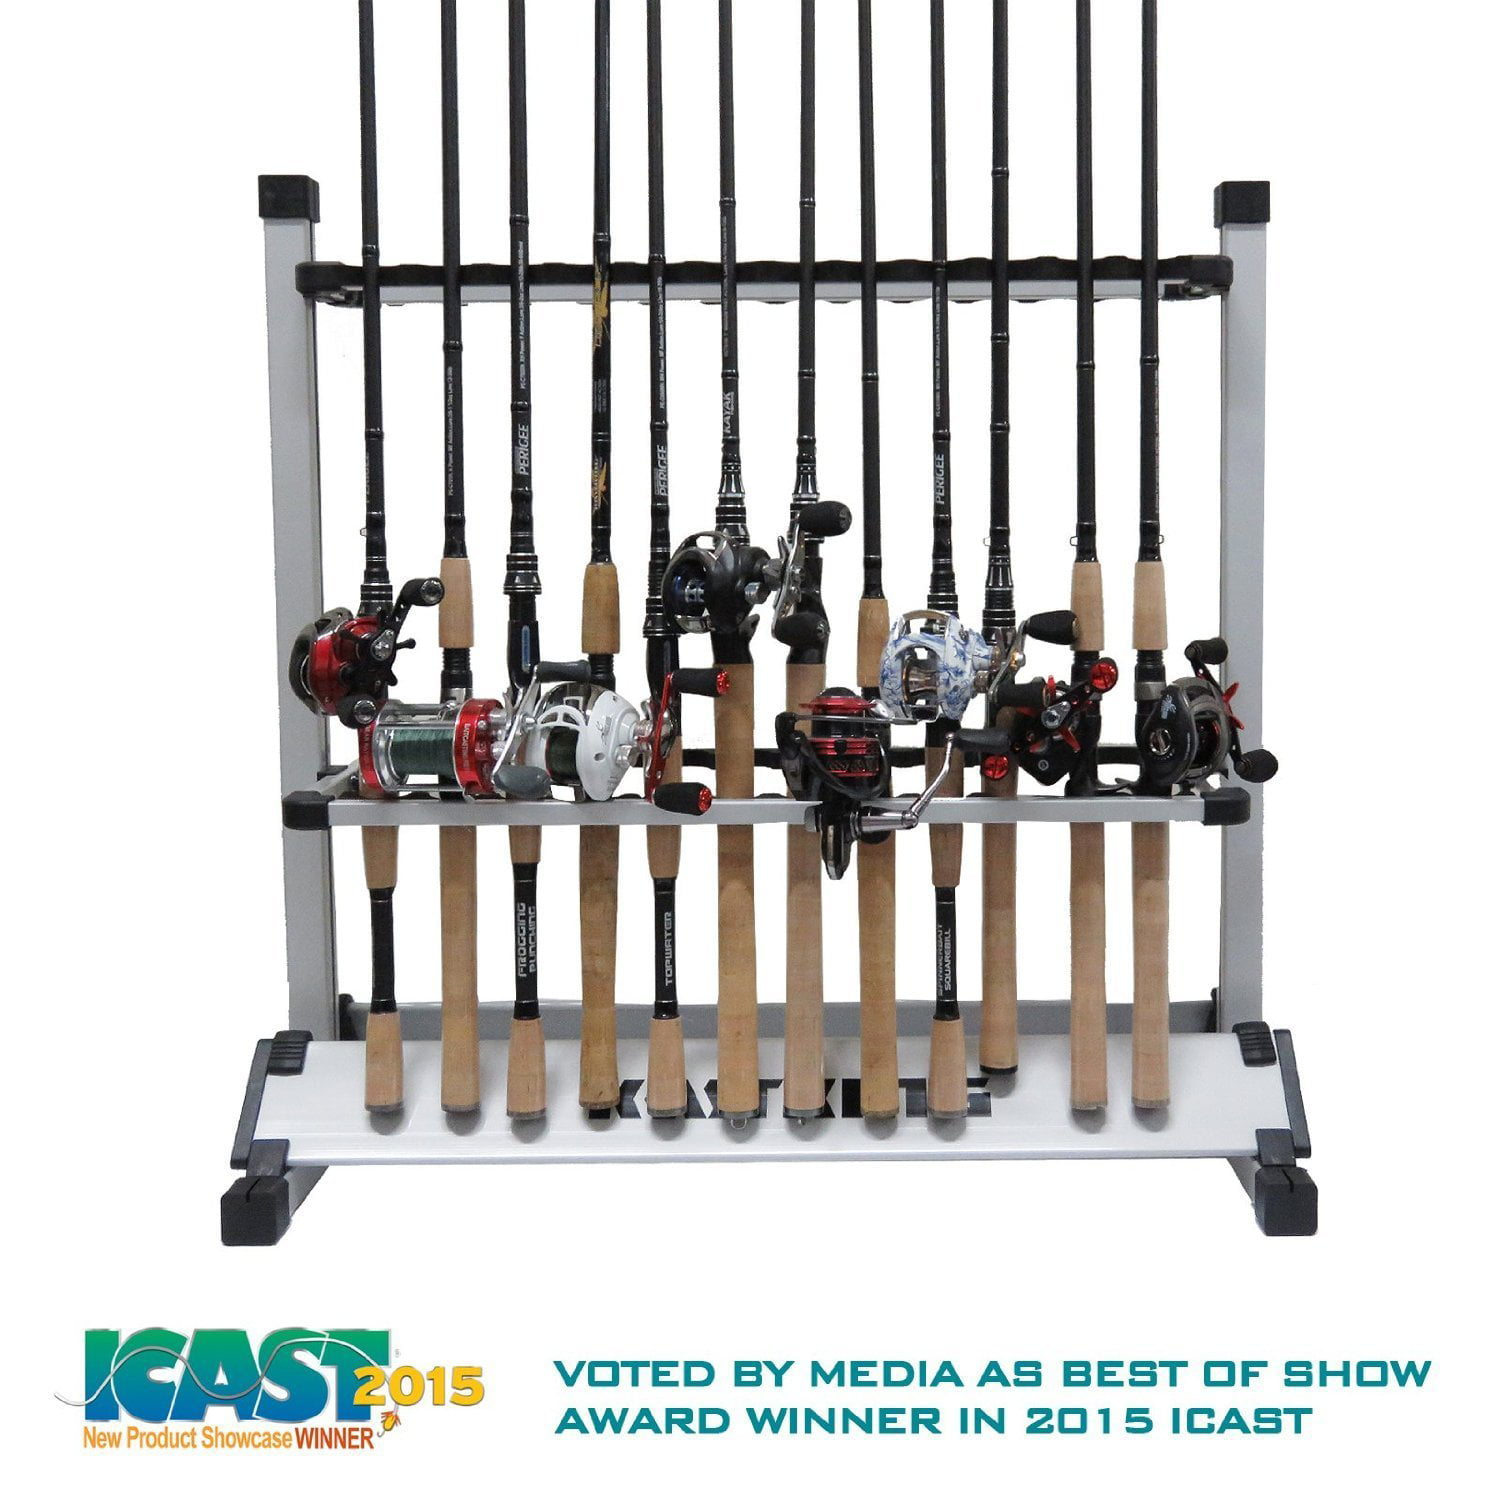 Click here to buy KastKing Rack 'em up Fishing Rods Holder 2015 ICAST Best of Show Award Winner Portable Aluminum Fishing Rod Racks 24 Rod... by Supplier Generic.